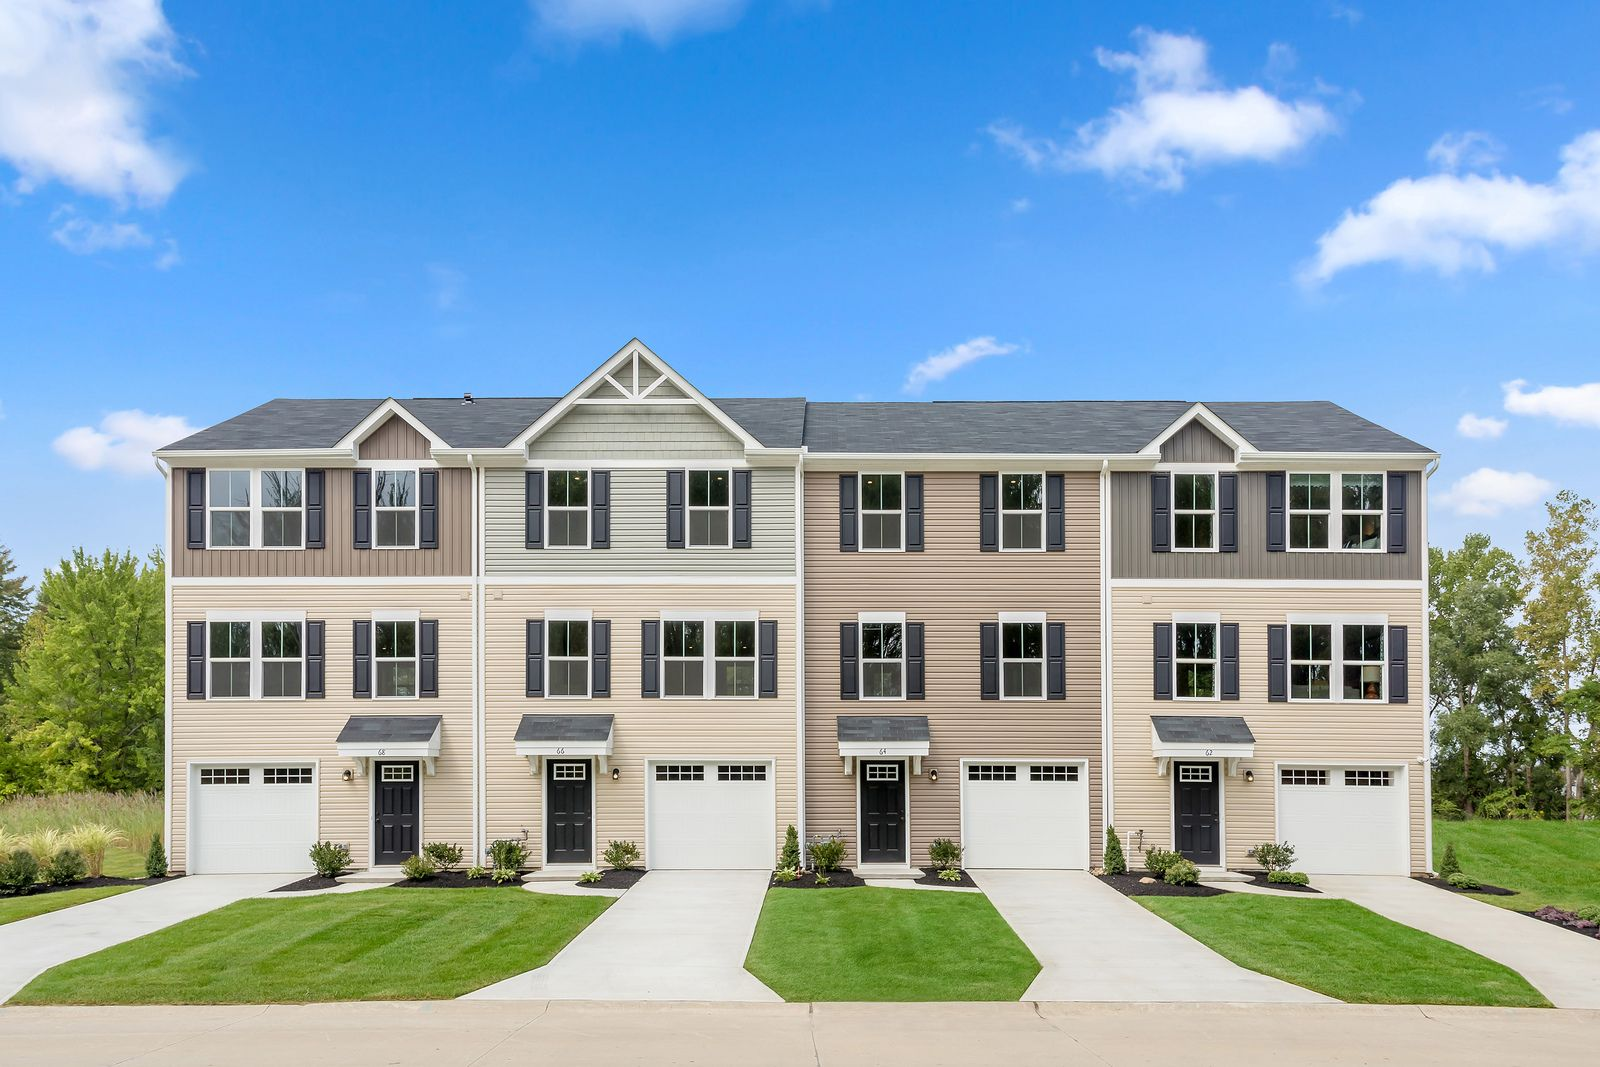 Why rent? Affordable townhomes minutes from downtown Durham:Own a 3-story townhome at the lowest price -Join the VIP list today to learn more!